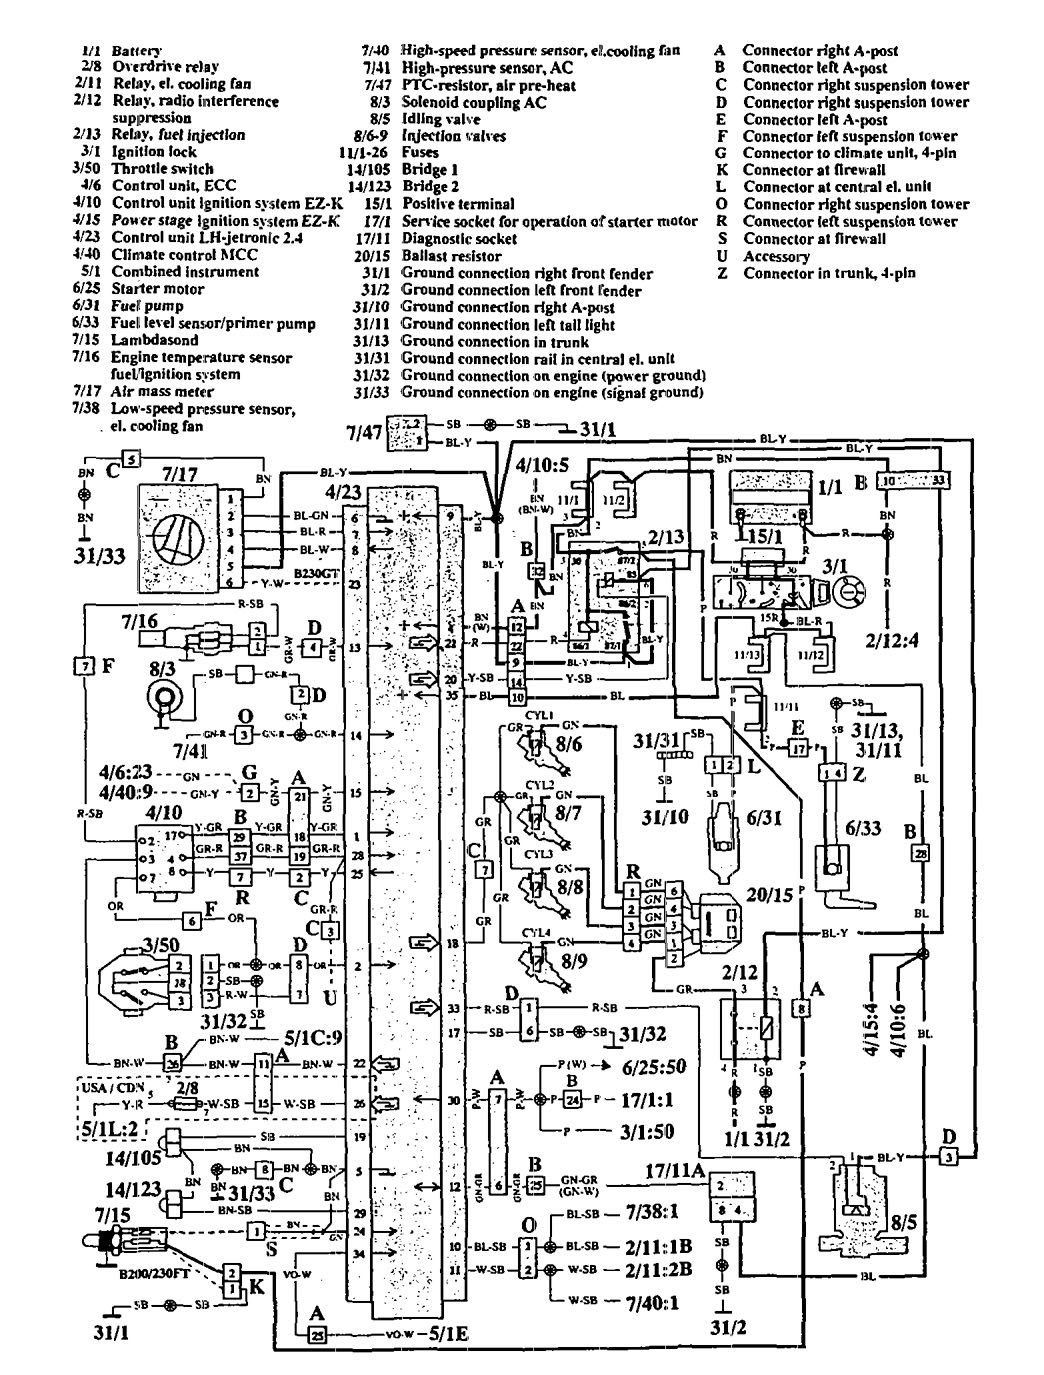 1990 Volvo 740 Wiring Diagram